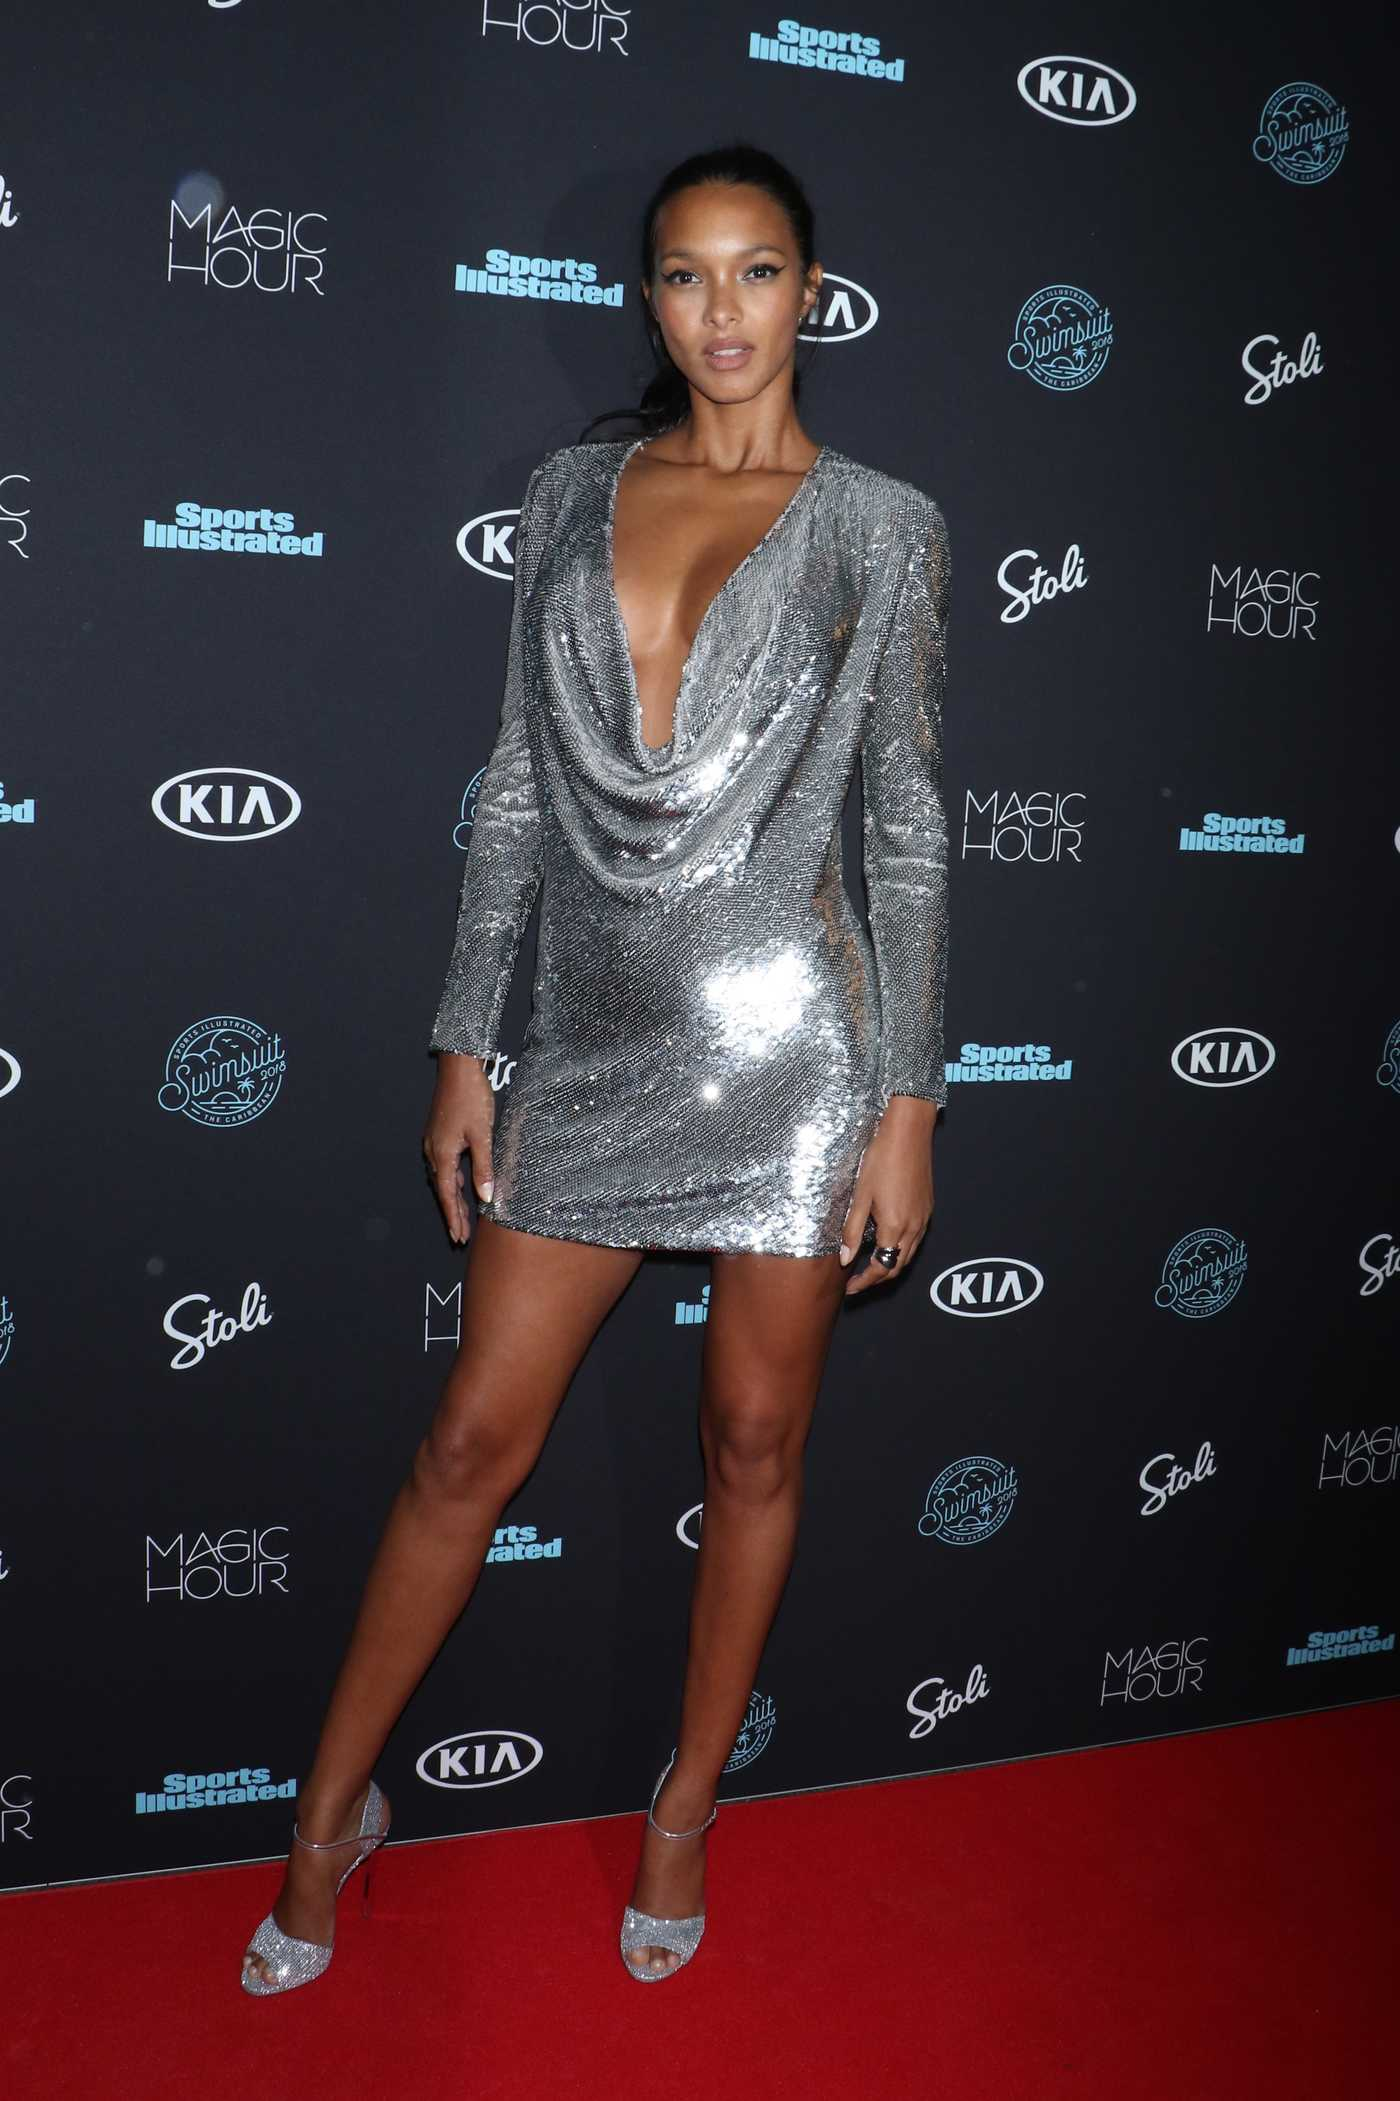 Lais Ribeiro at 2018 Sports Illustrated Swimsuit Launch Event in New York 02/14/2018